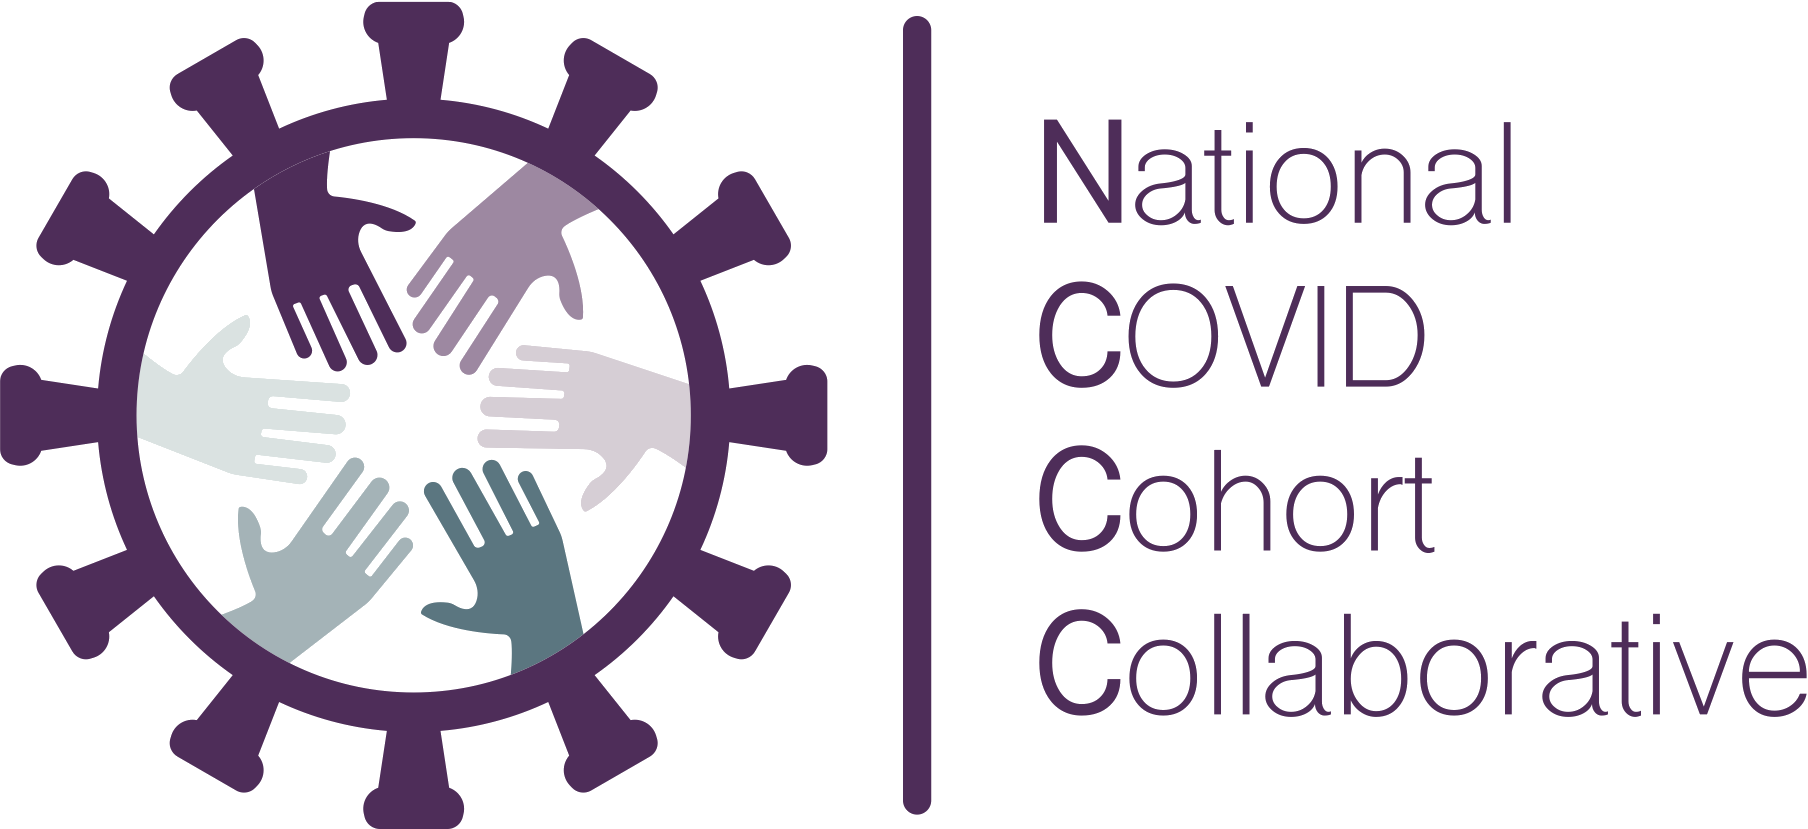 Logo for the National COVID Cohort Collaborative.